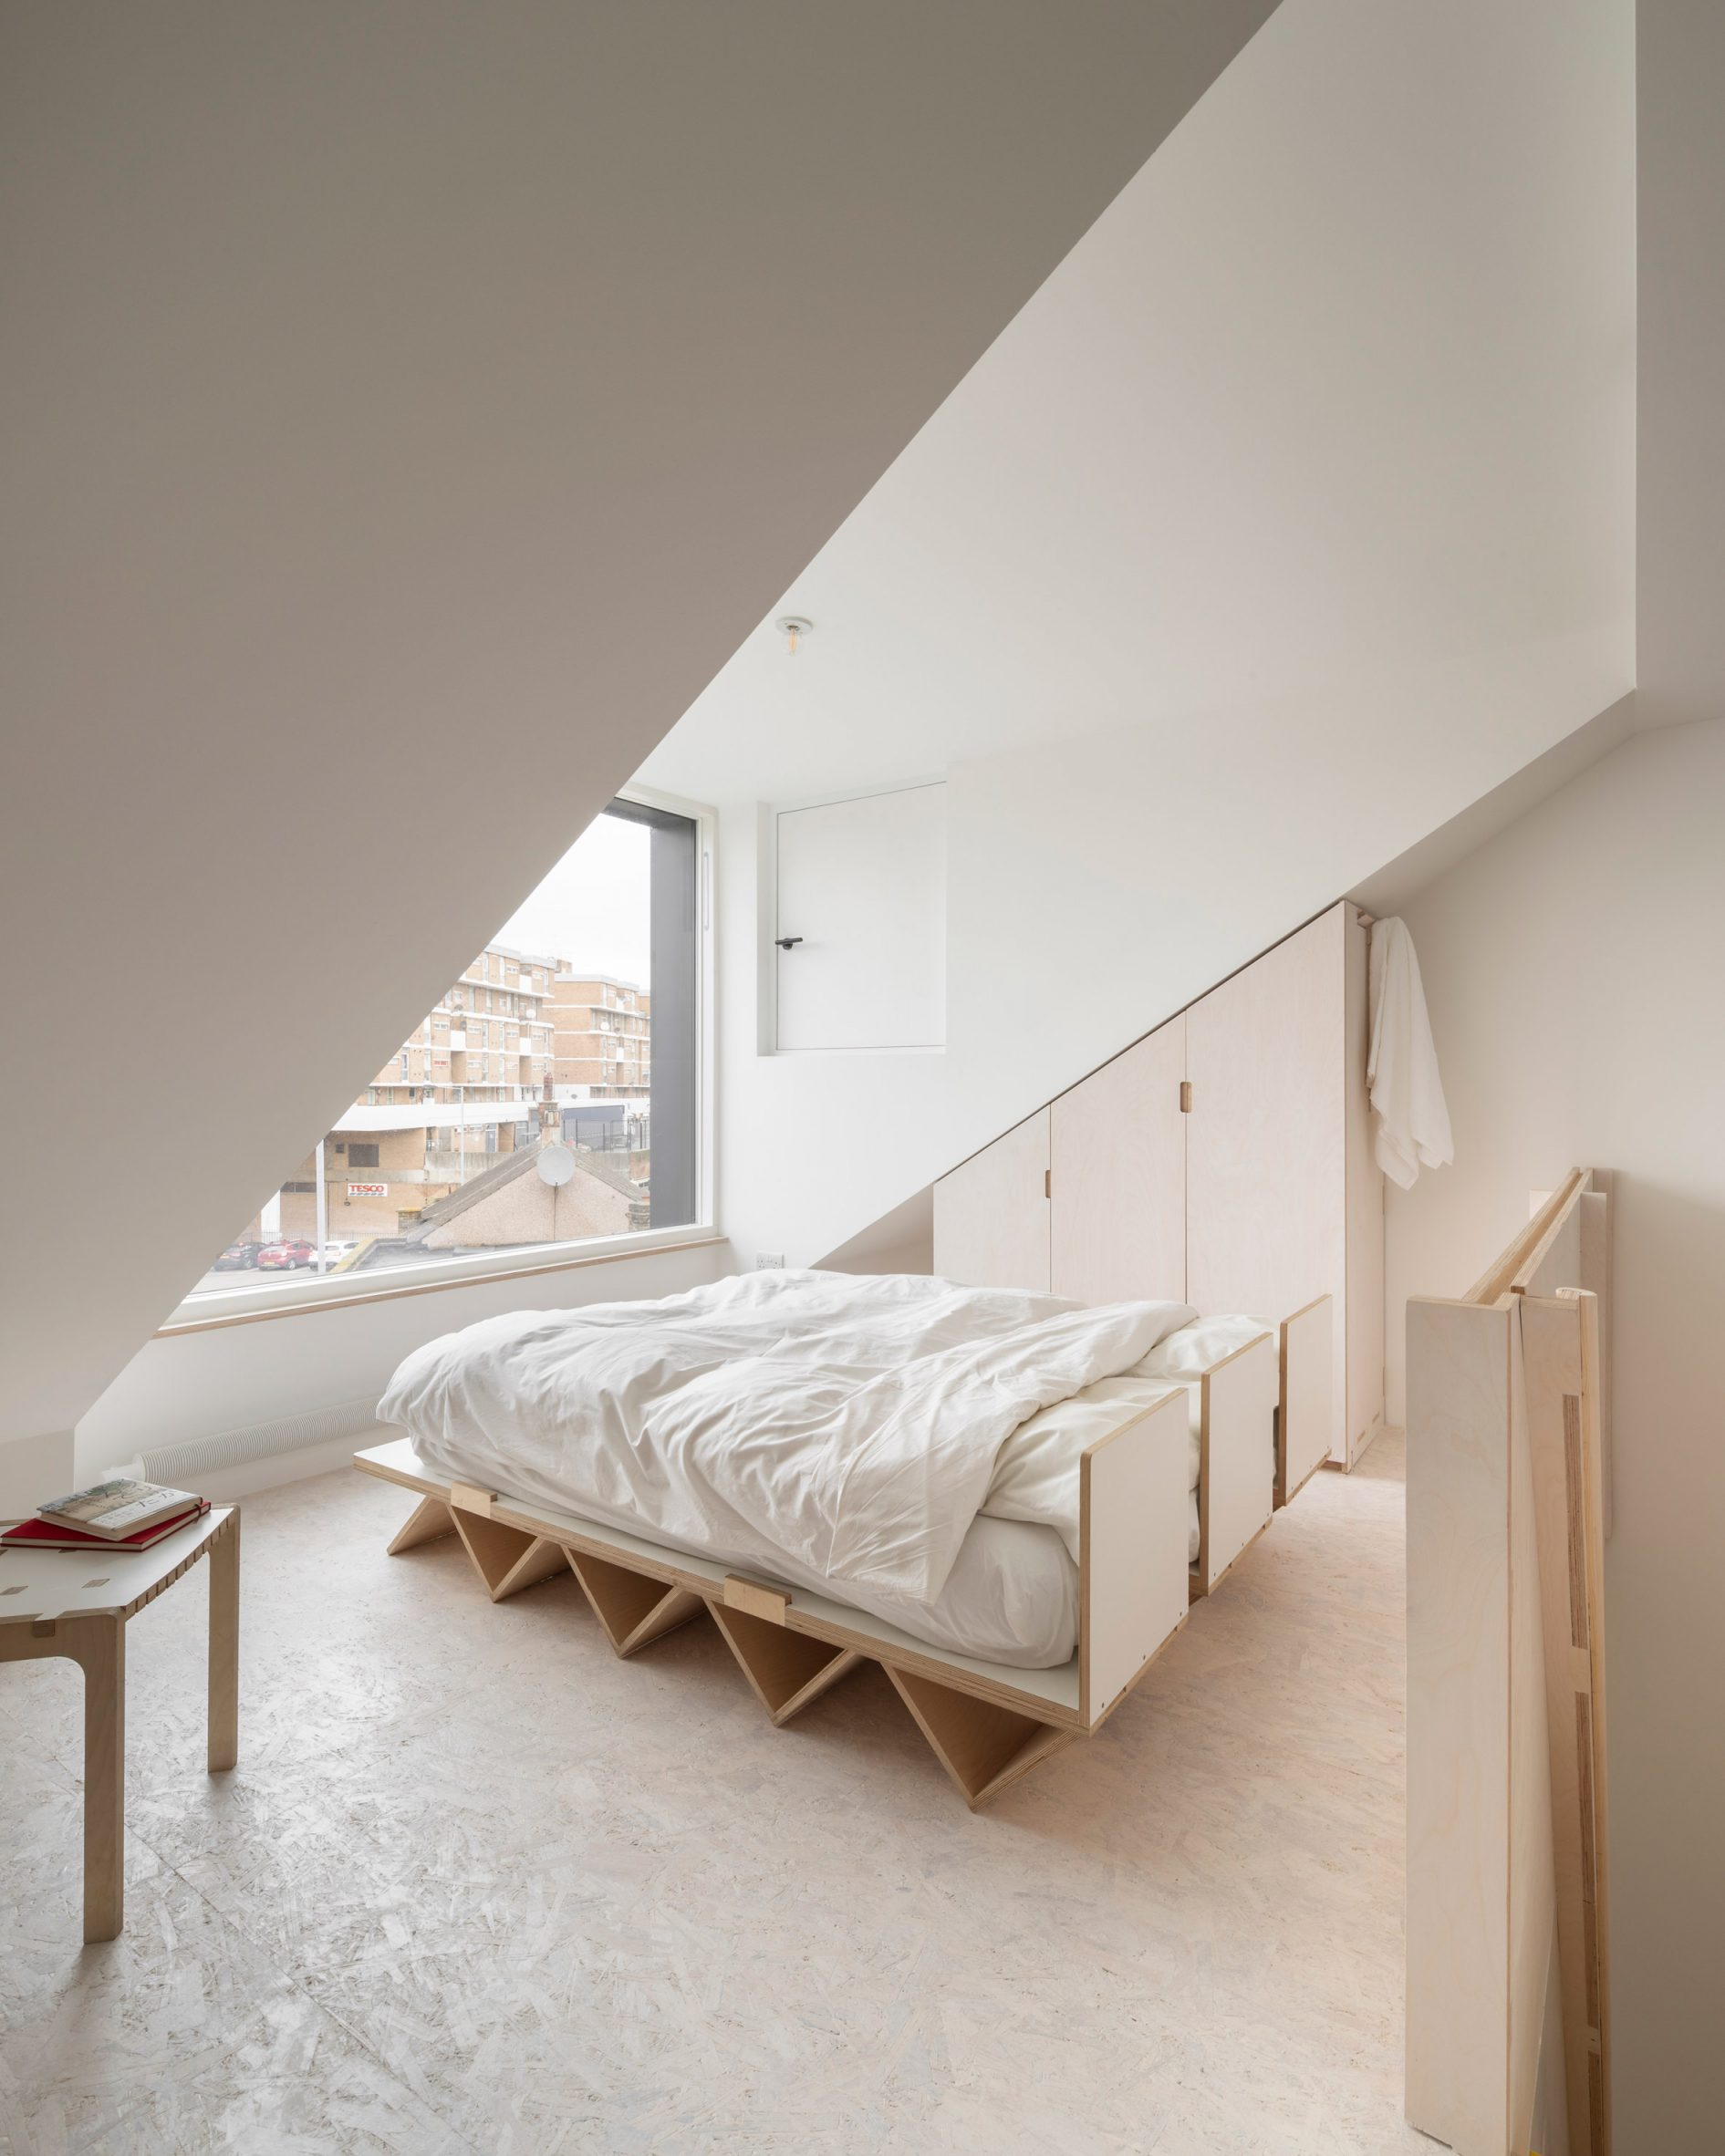 Bed deck in The Queen of Catford by Tsuruta Architects